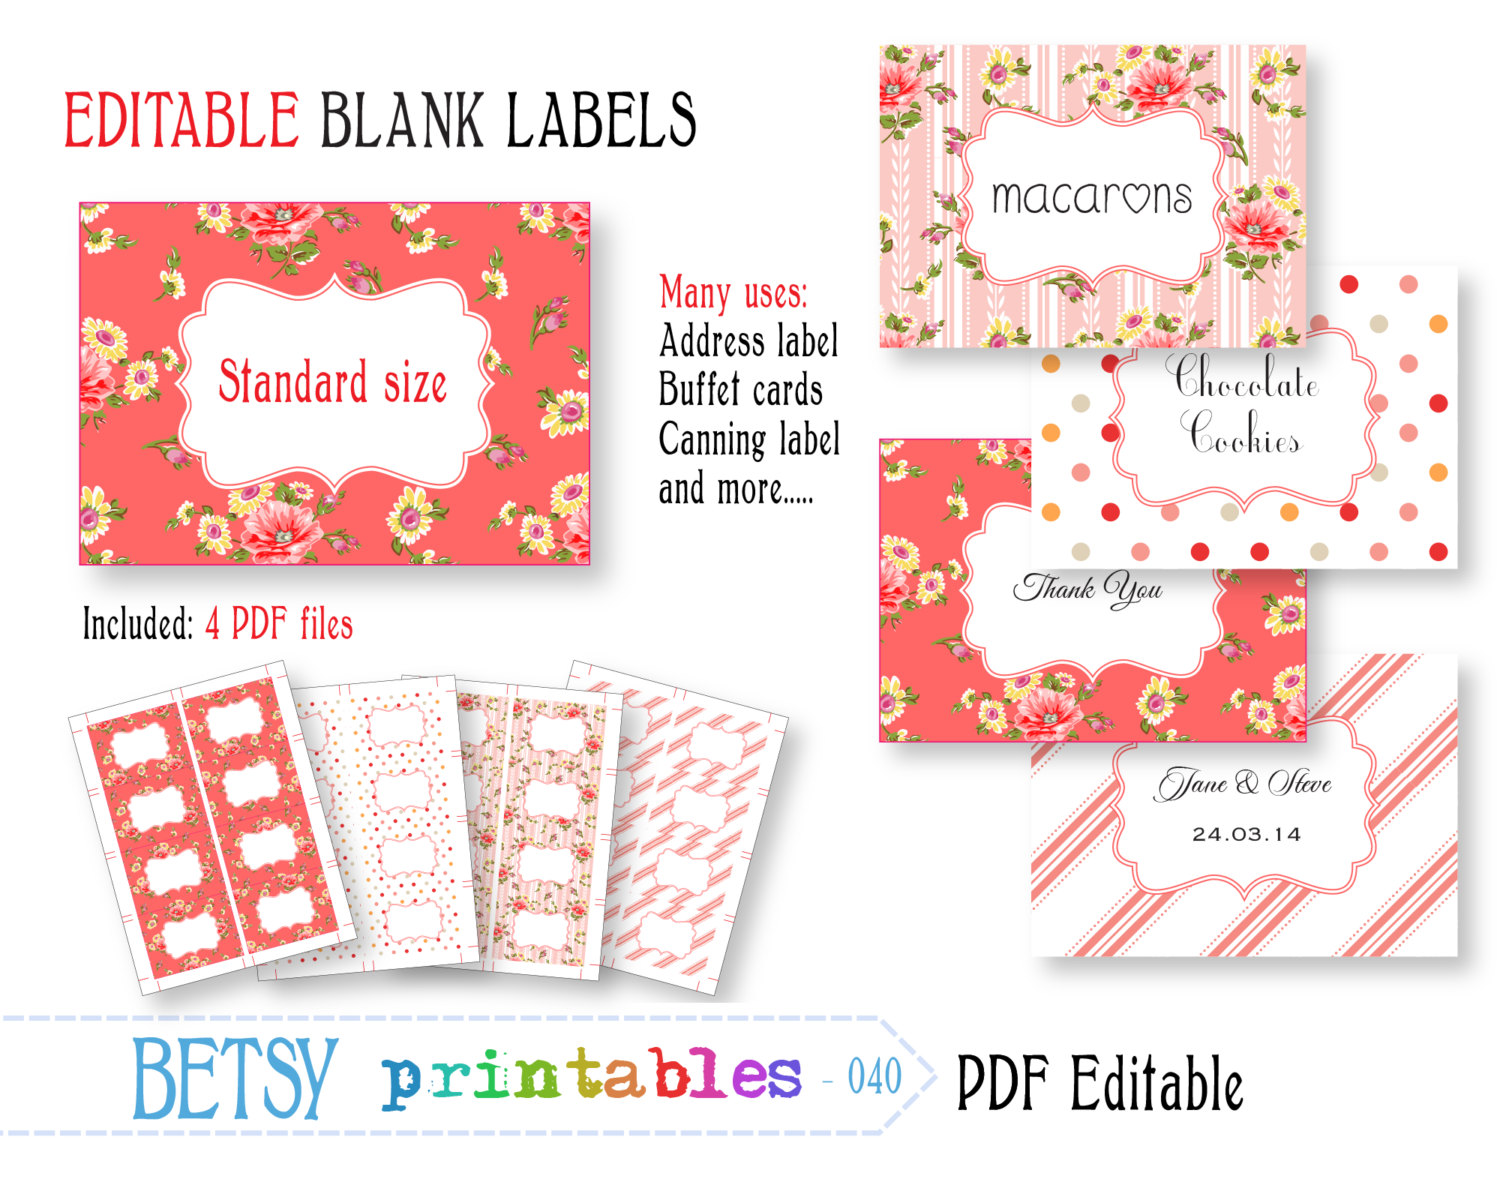 Free Printable and Editable Labels